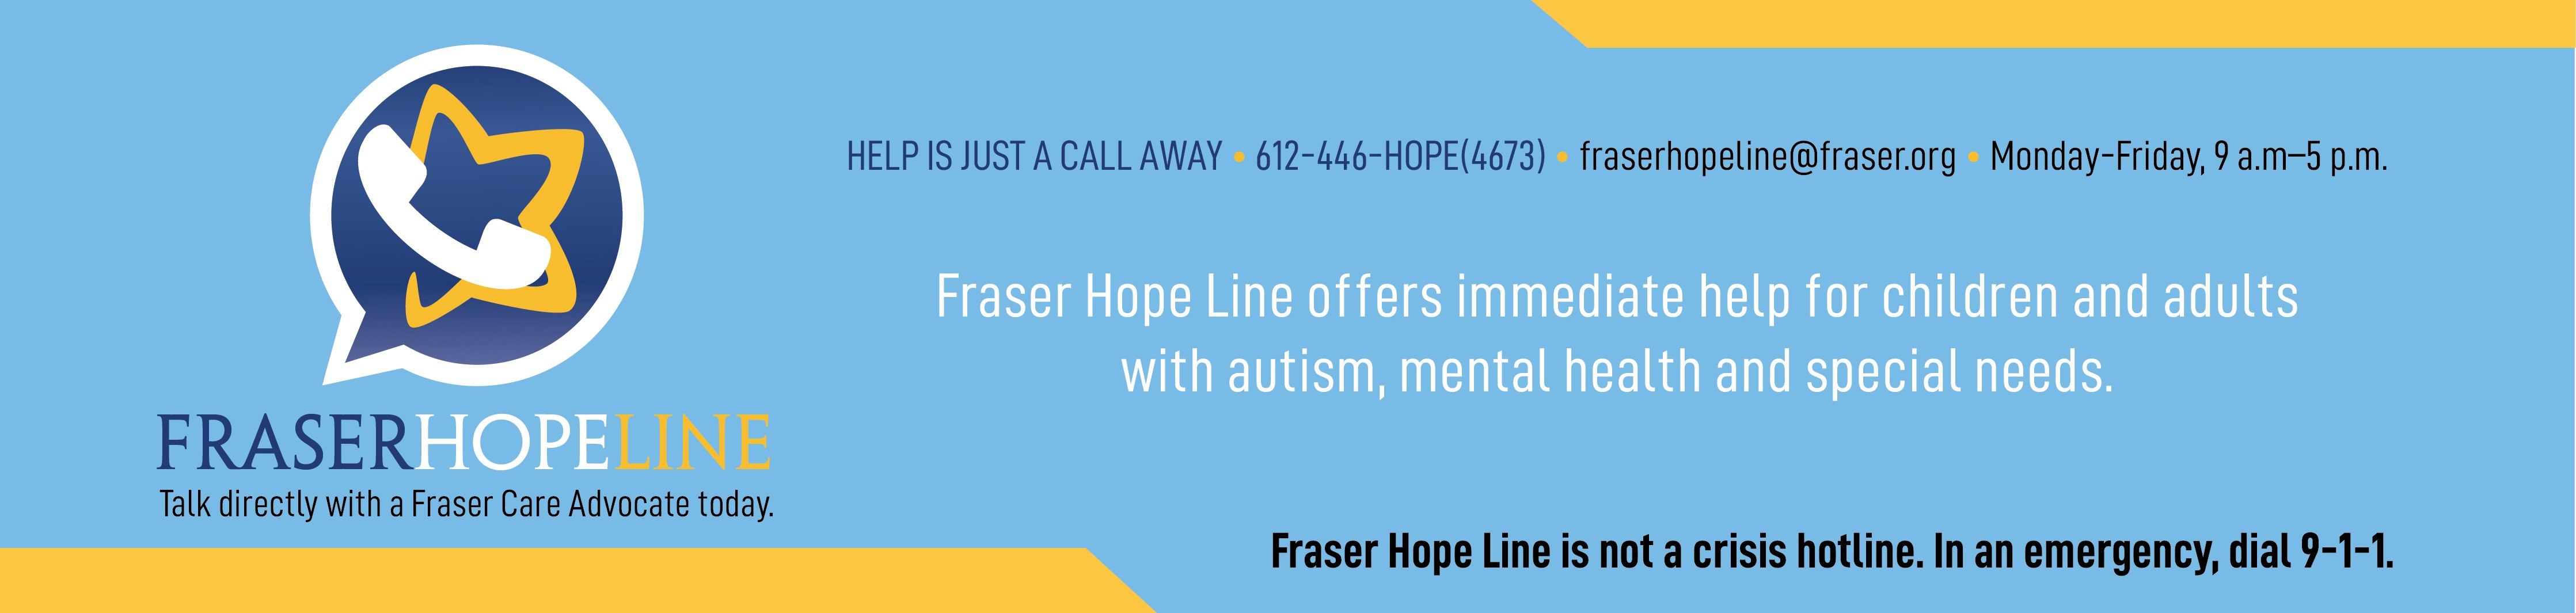 Fraser Hope Line Connects Individuals to a Care Advocate Immediately (NEW HOURS)